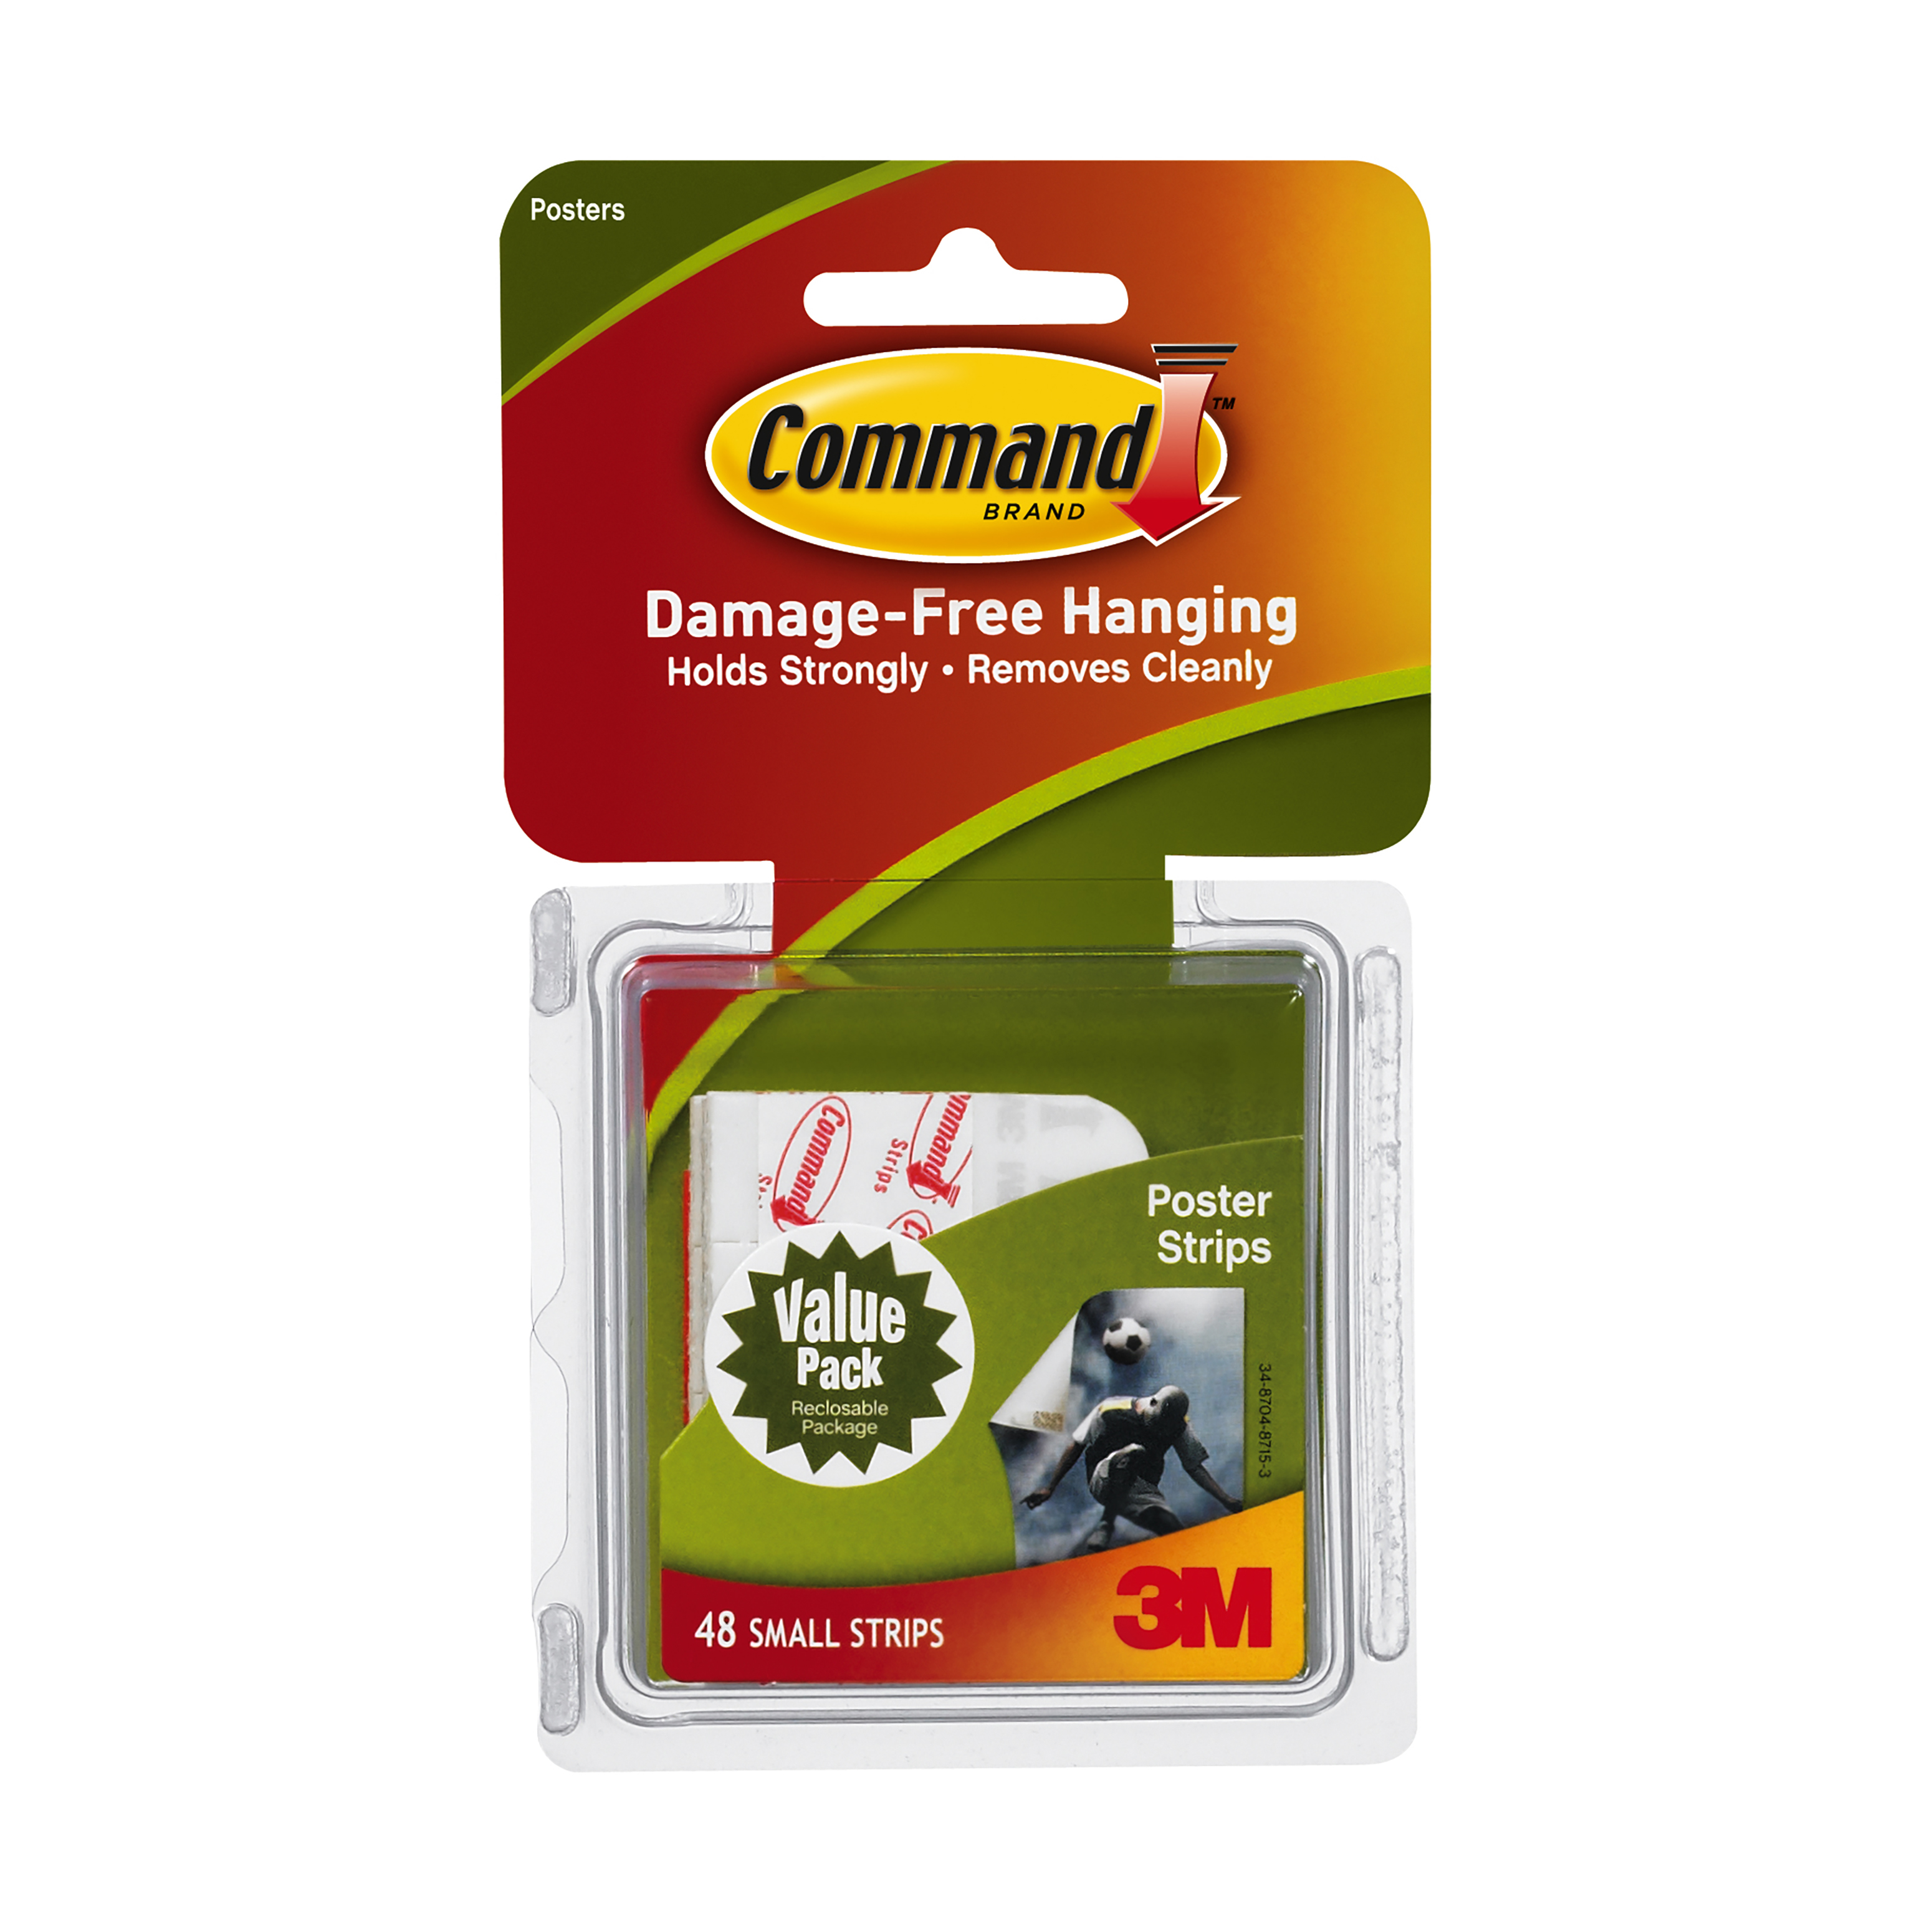 3m command poster hanging strips small 48 pkg